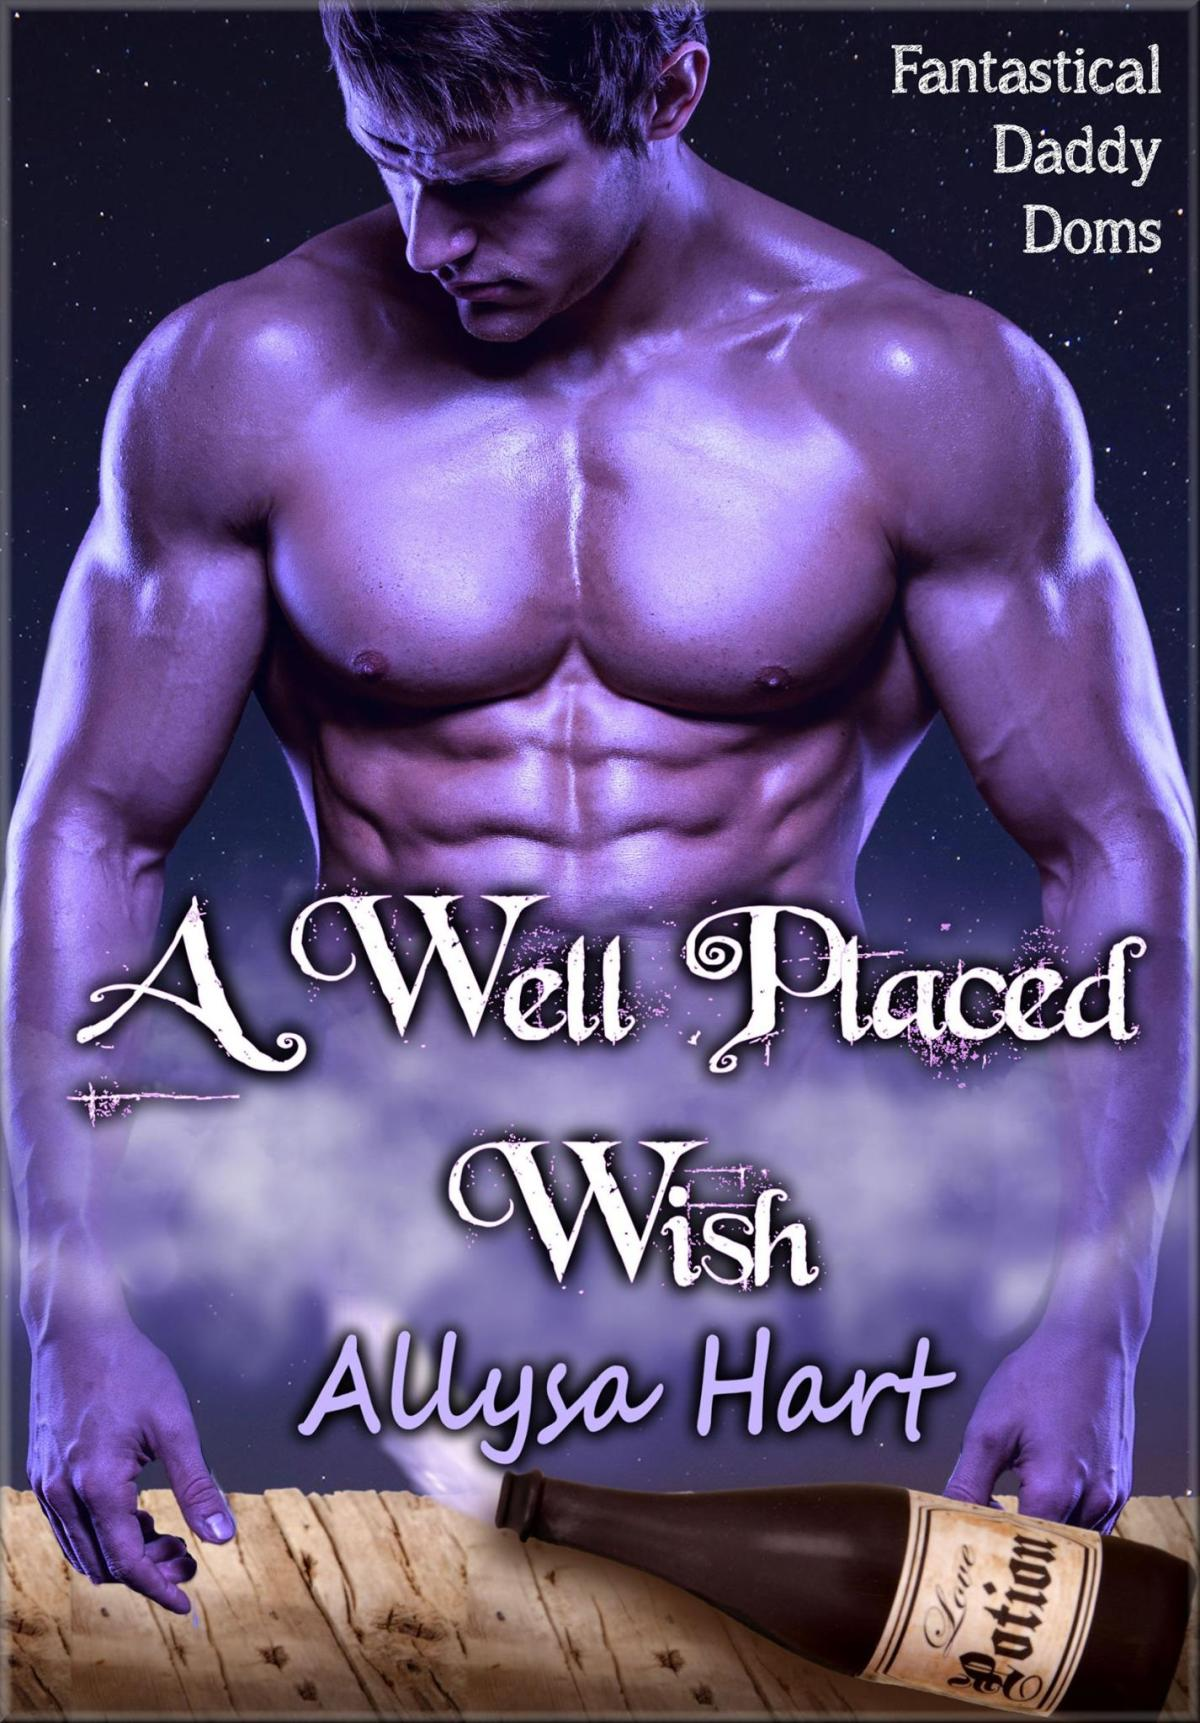 A Well Placed Wish by Allysa Hart.